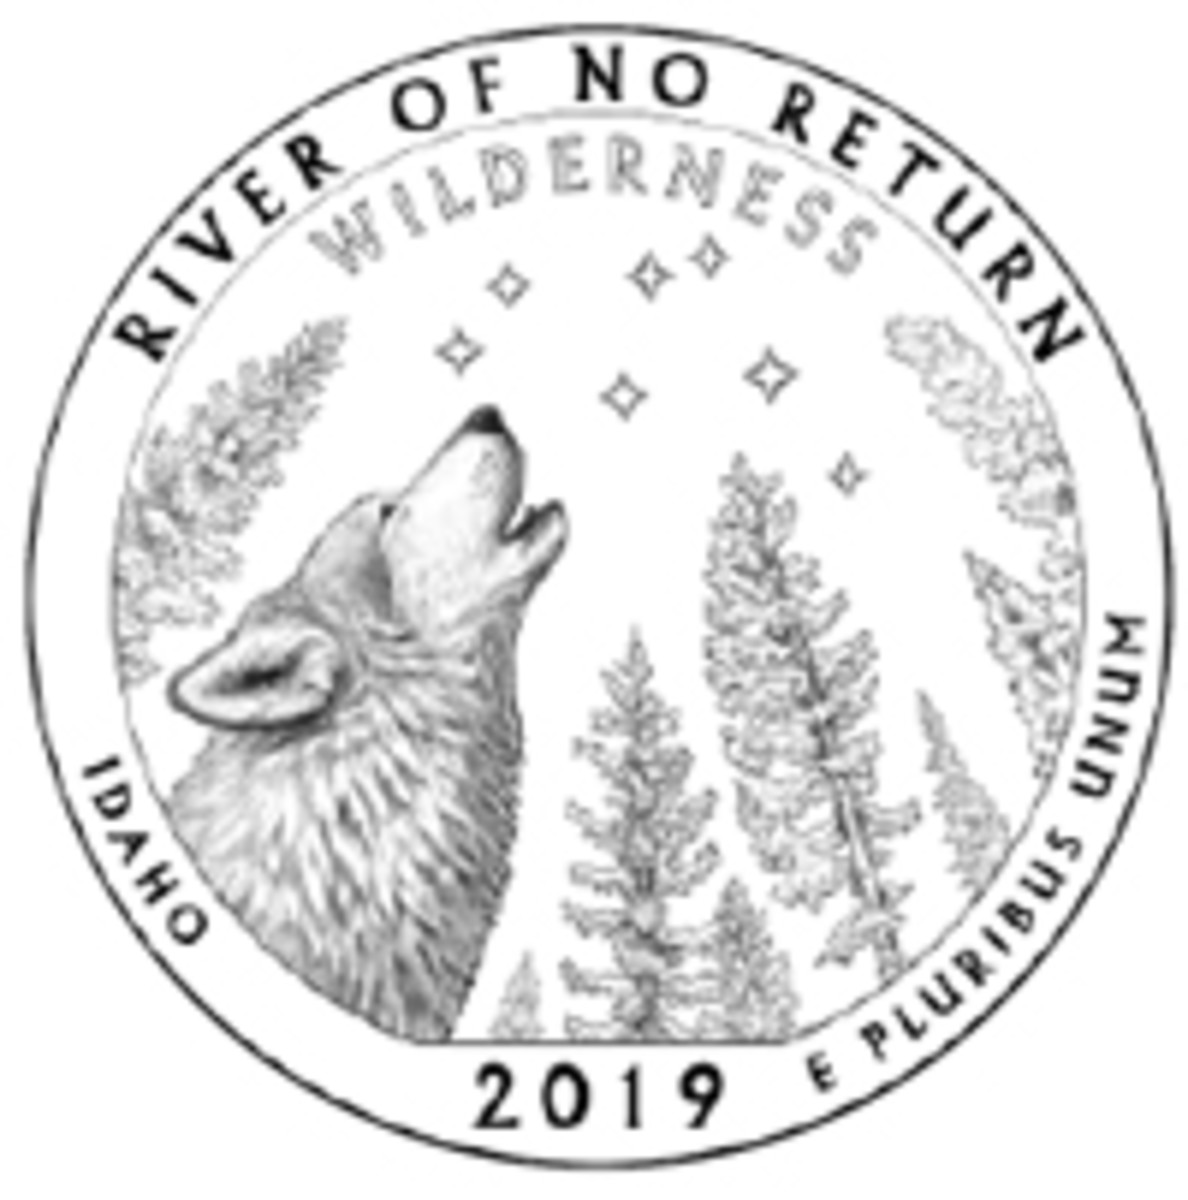 A wolf, a remote forest and a vast, starry sky won the CCAC's affection for Design 05A for the River of No Return Wilderness quarter design.